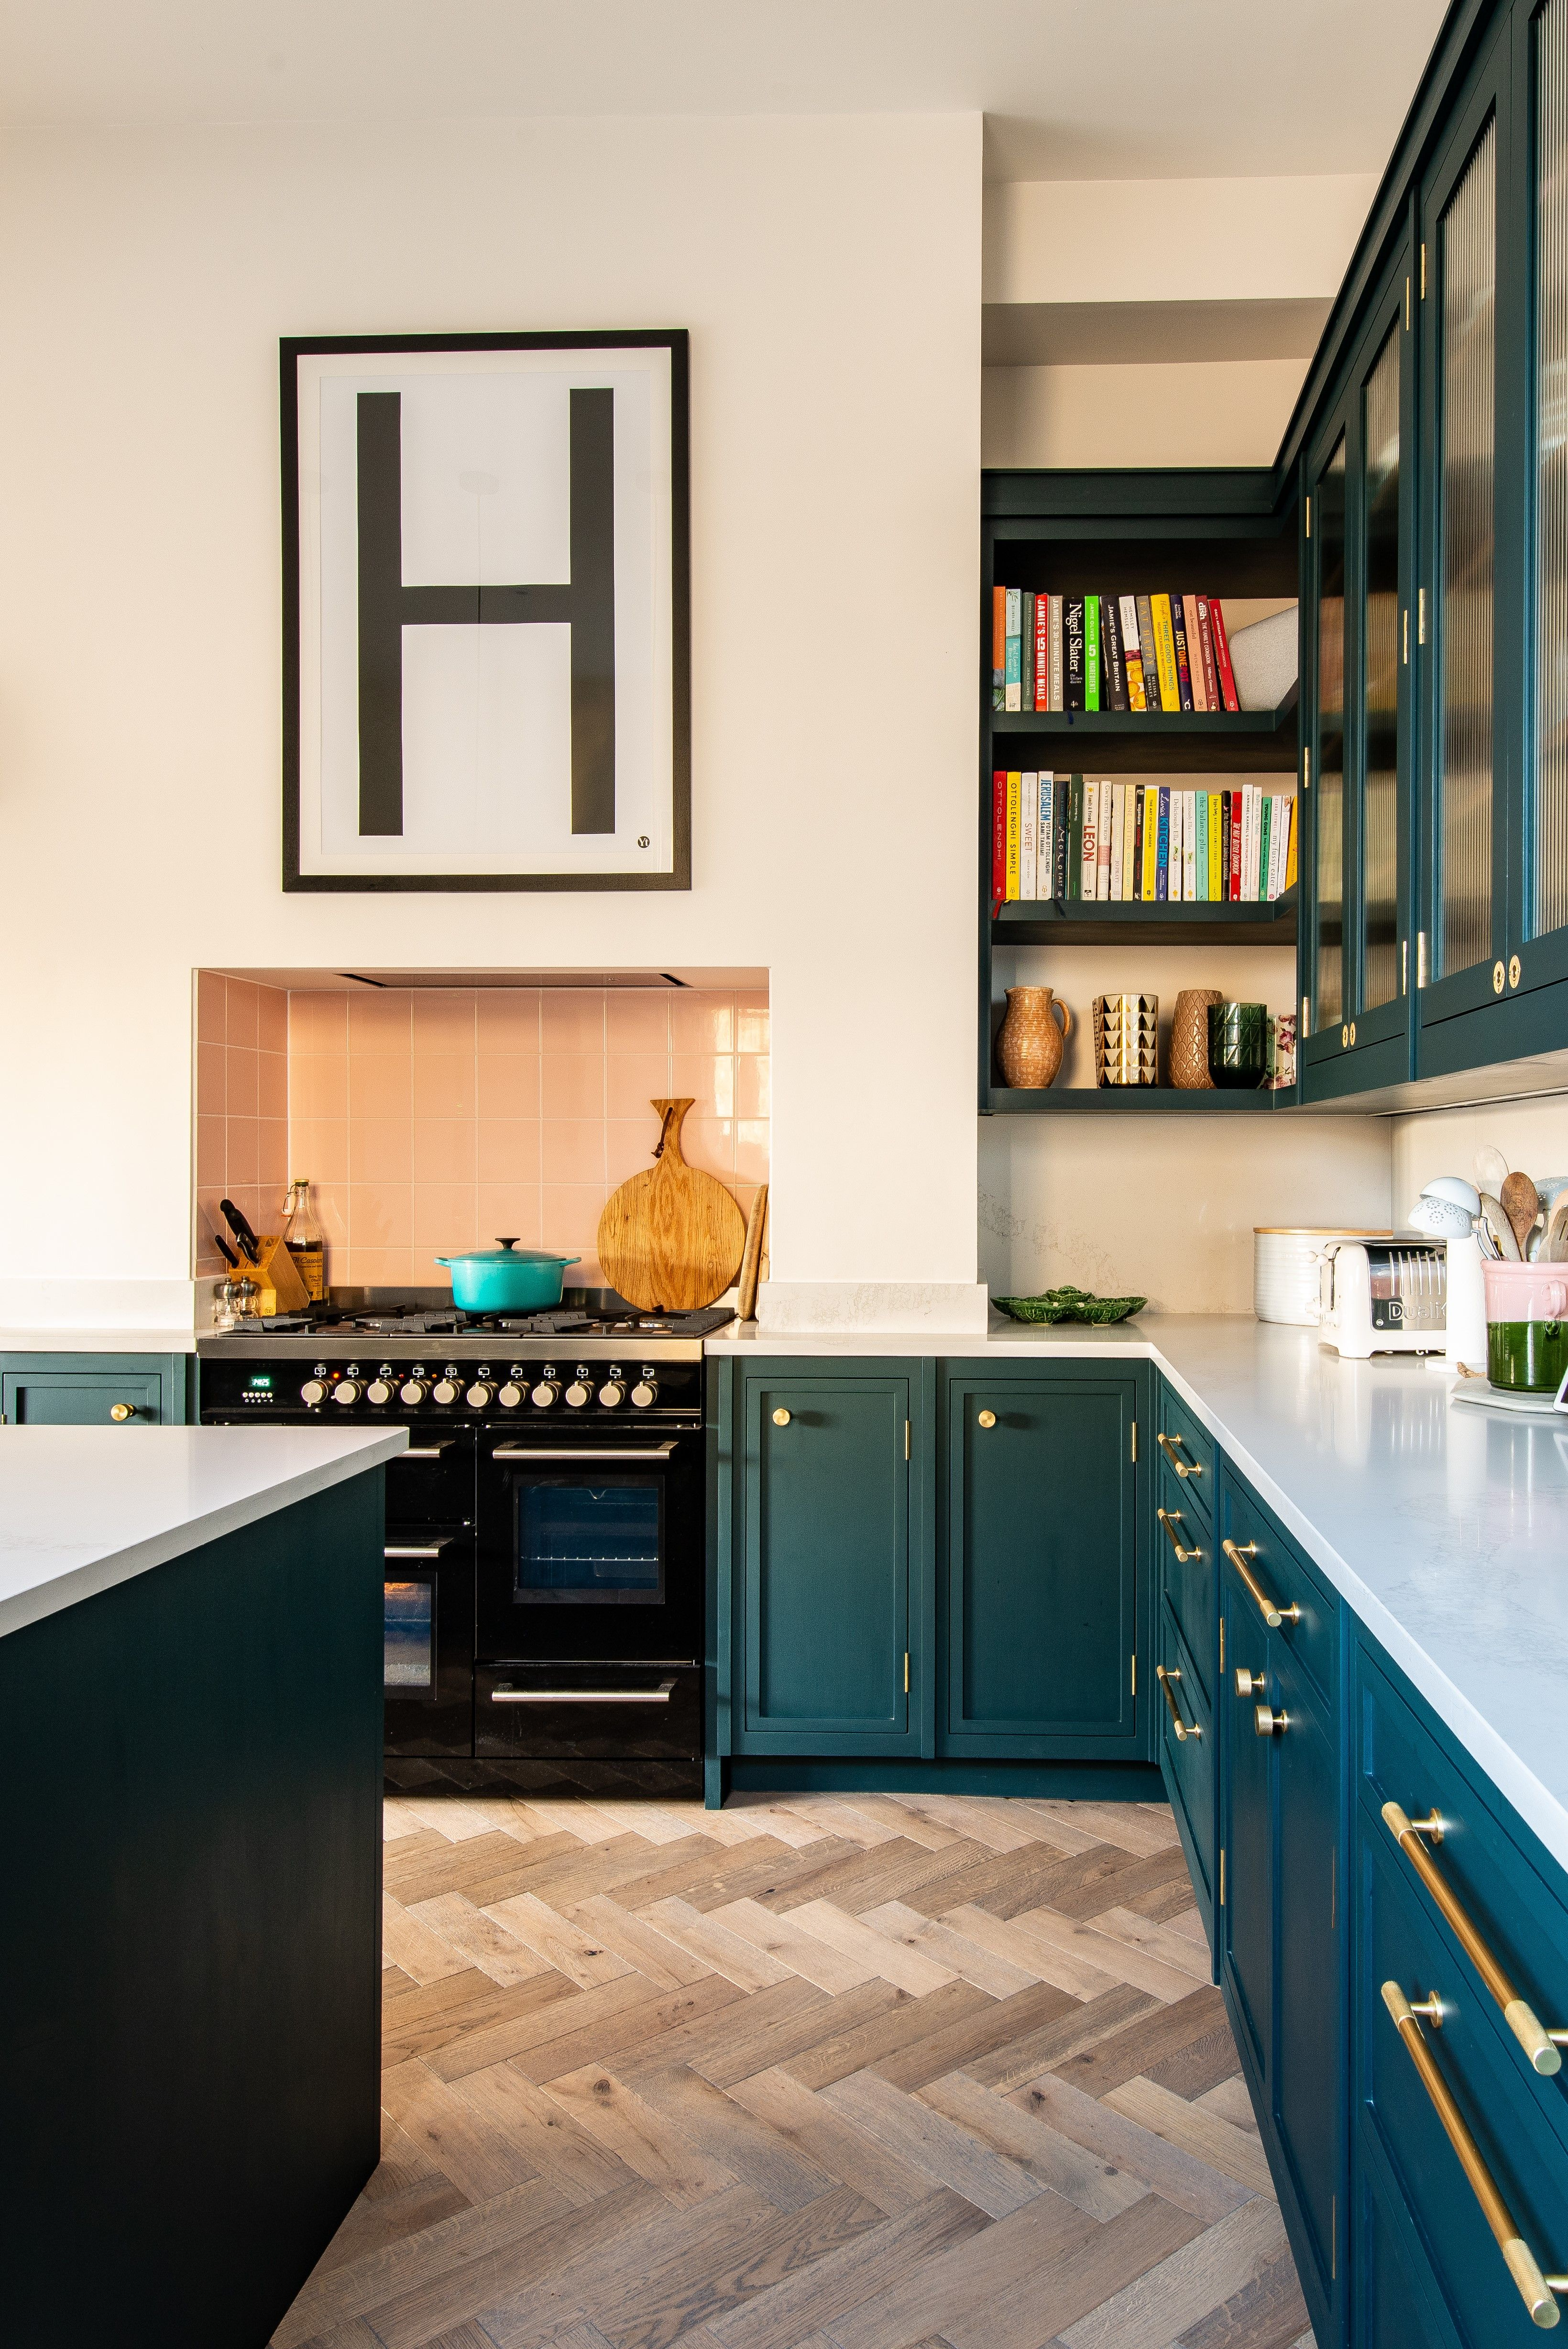 We Recently Designed And Fitted This Bespoke Kitchen For The Hooper Family Also Known As Mother And F Bespoke Kitchen Design Kitchen Design Home Decor Kitchen